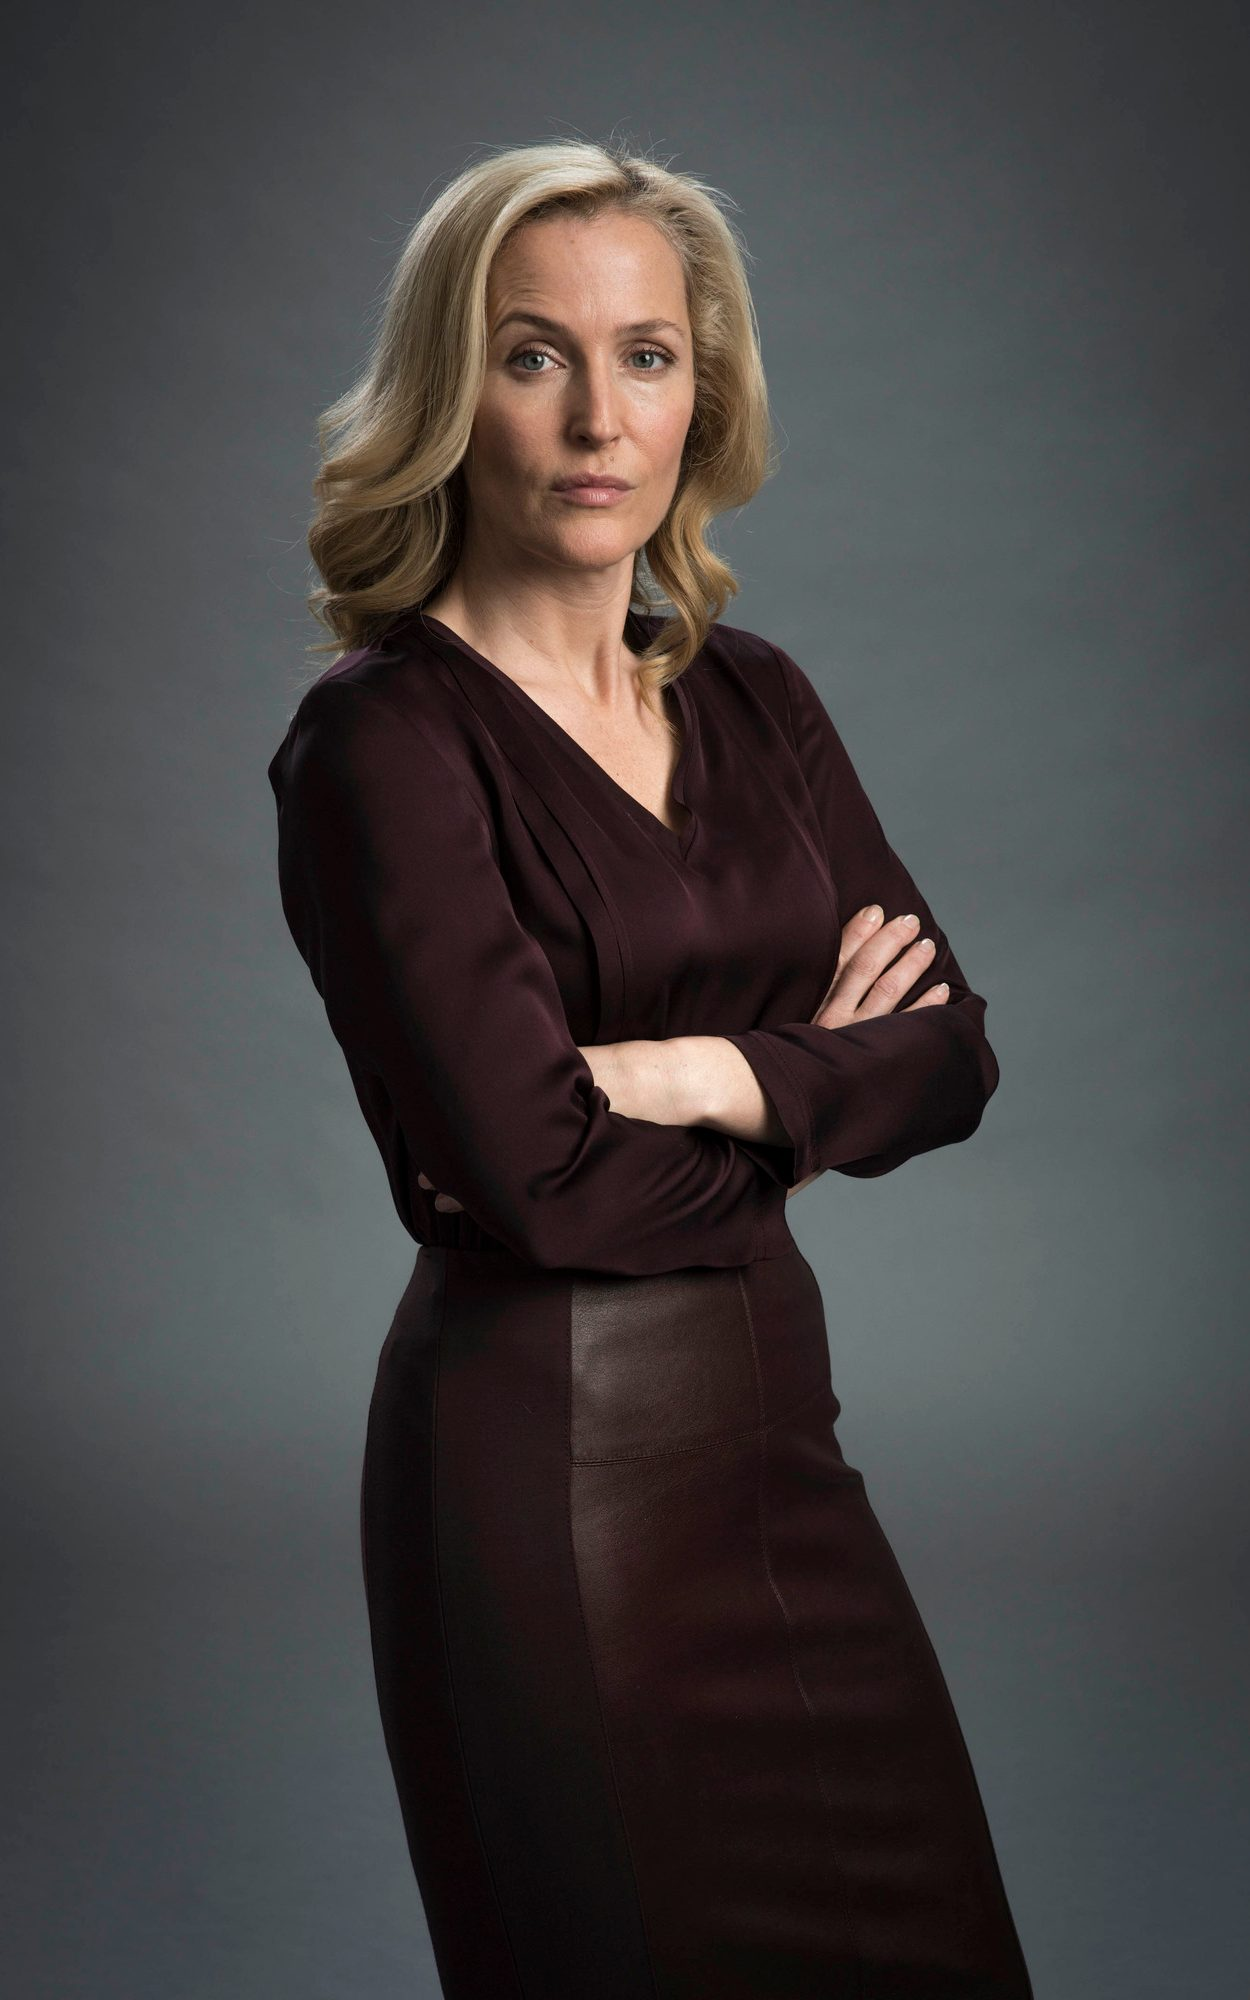 Gillian Anderson The Fall Wallpaper Is Gillian Anderson S Brey The Most Flattering Hair Shade